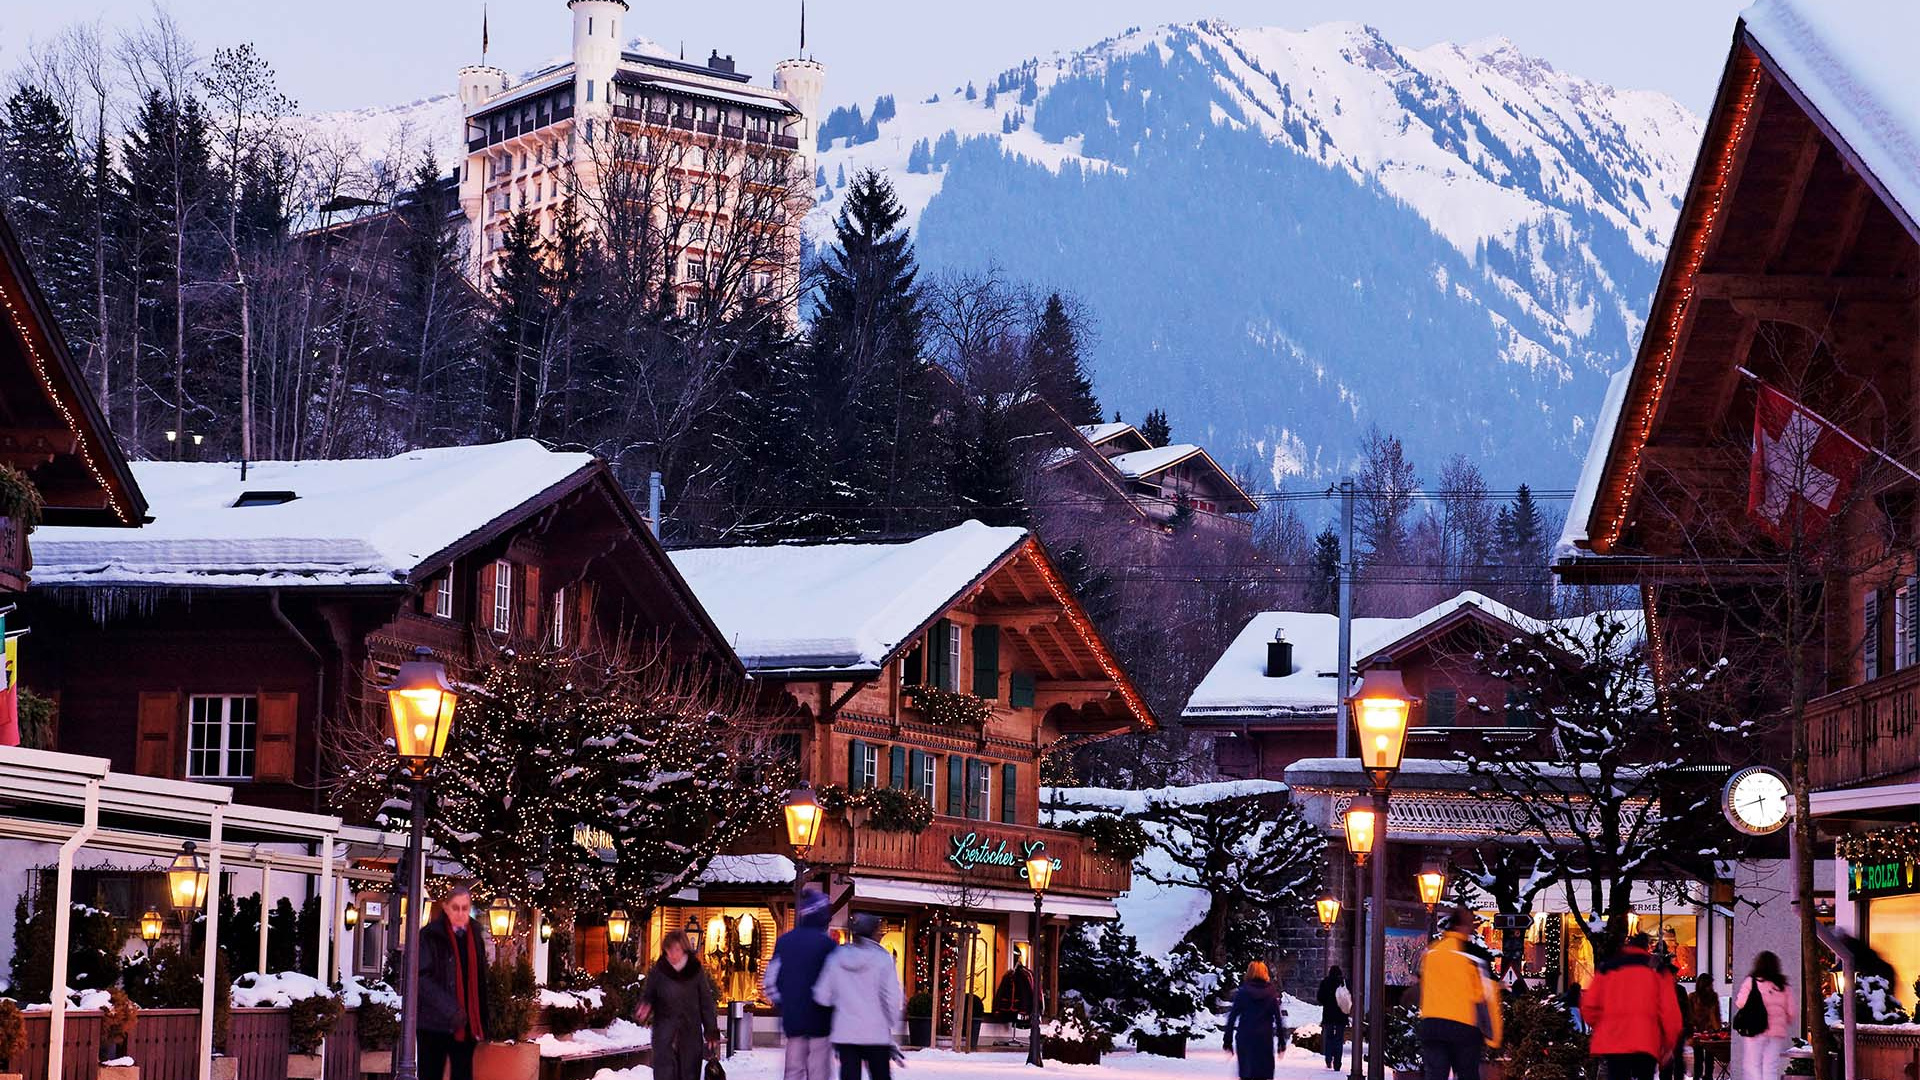 Gstaad The Swiss ski resort with a glamorous history Escapism